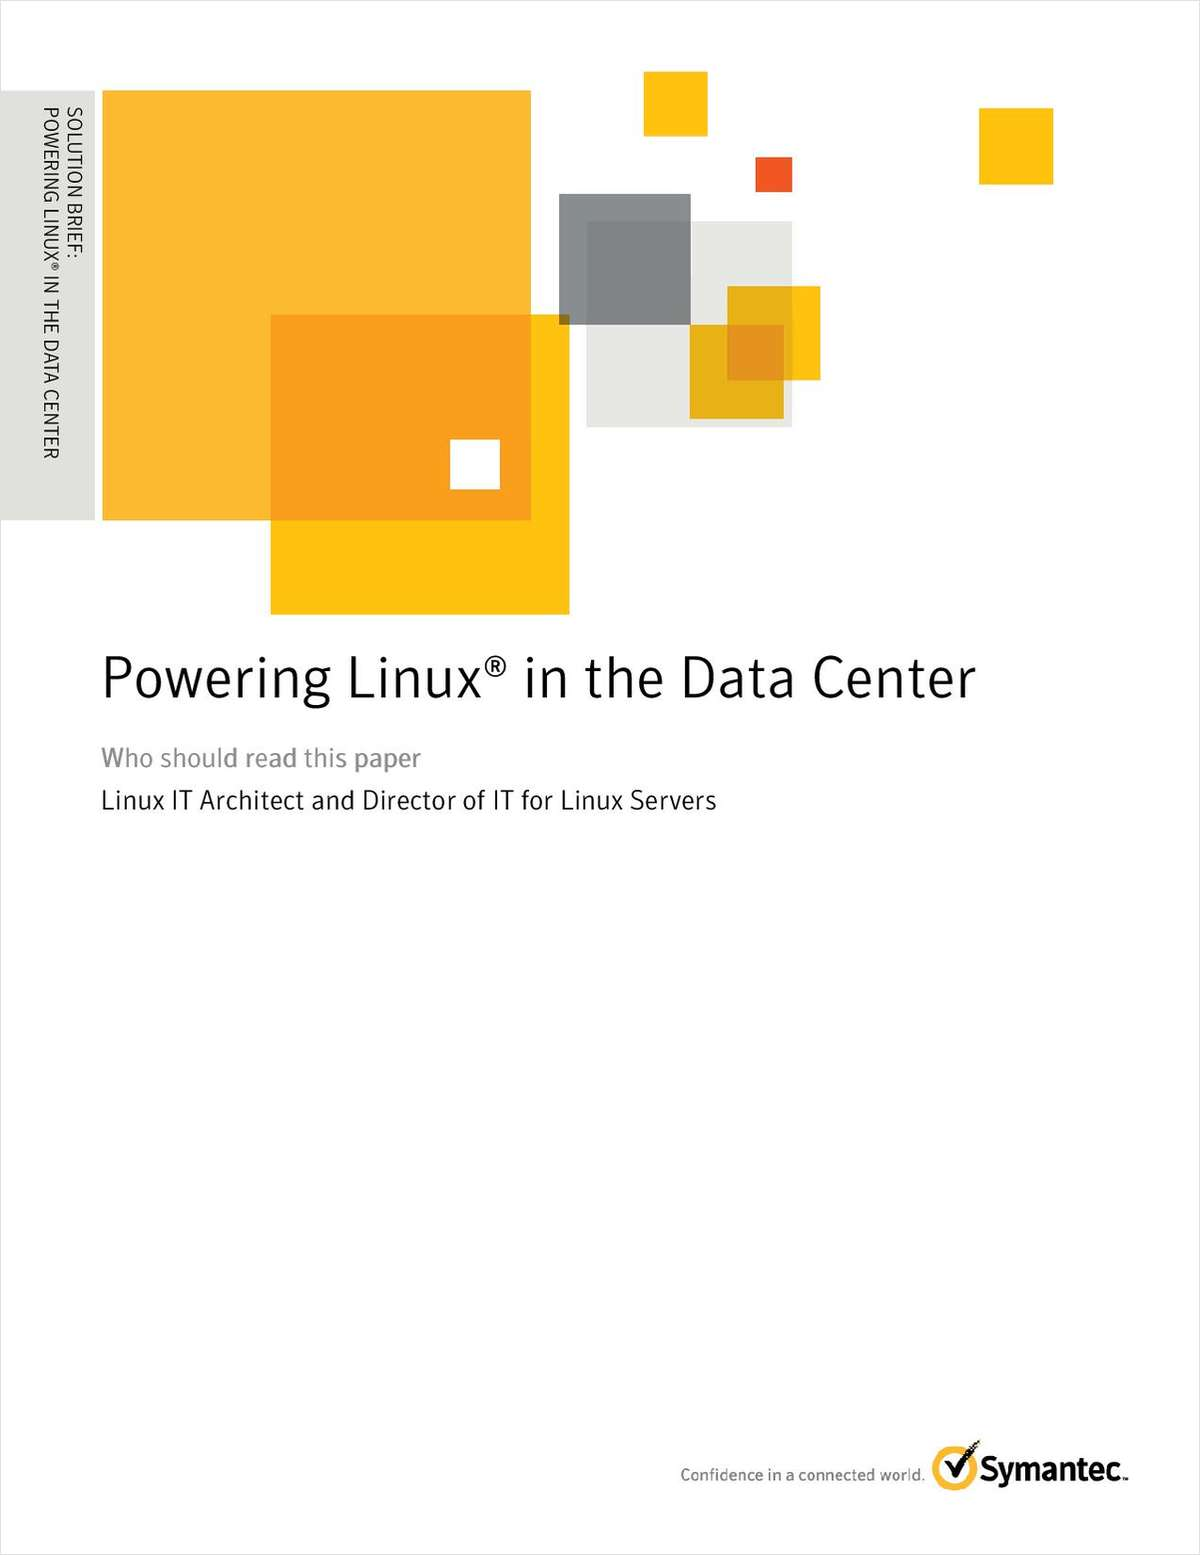 Powering Linux® in the Data Center